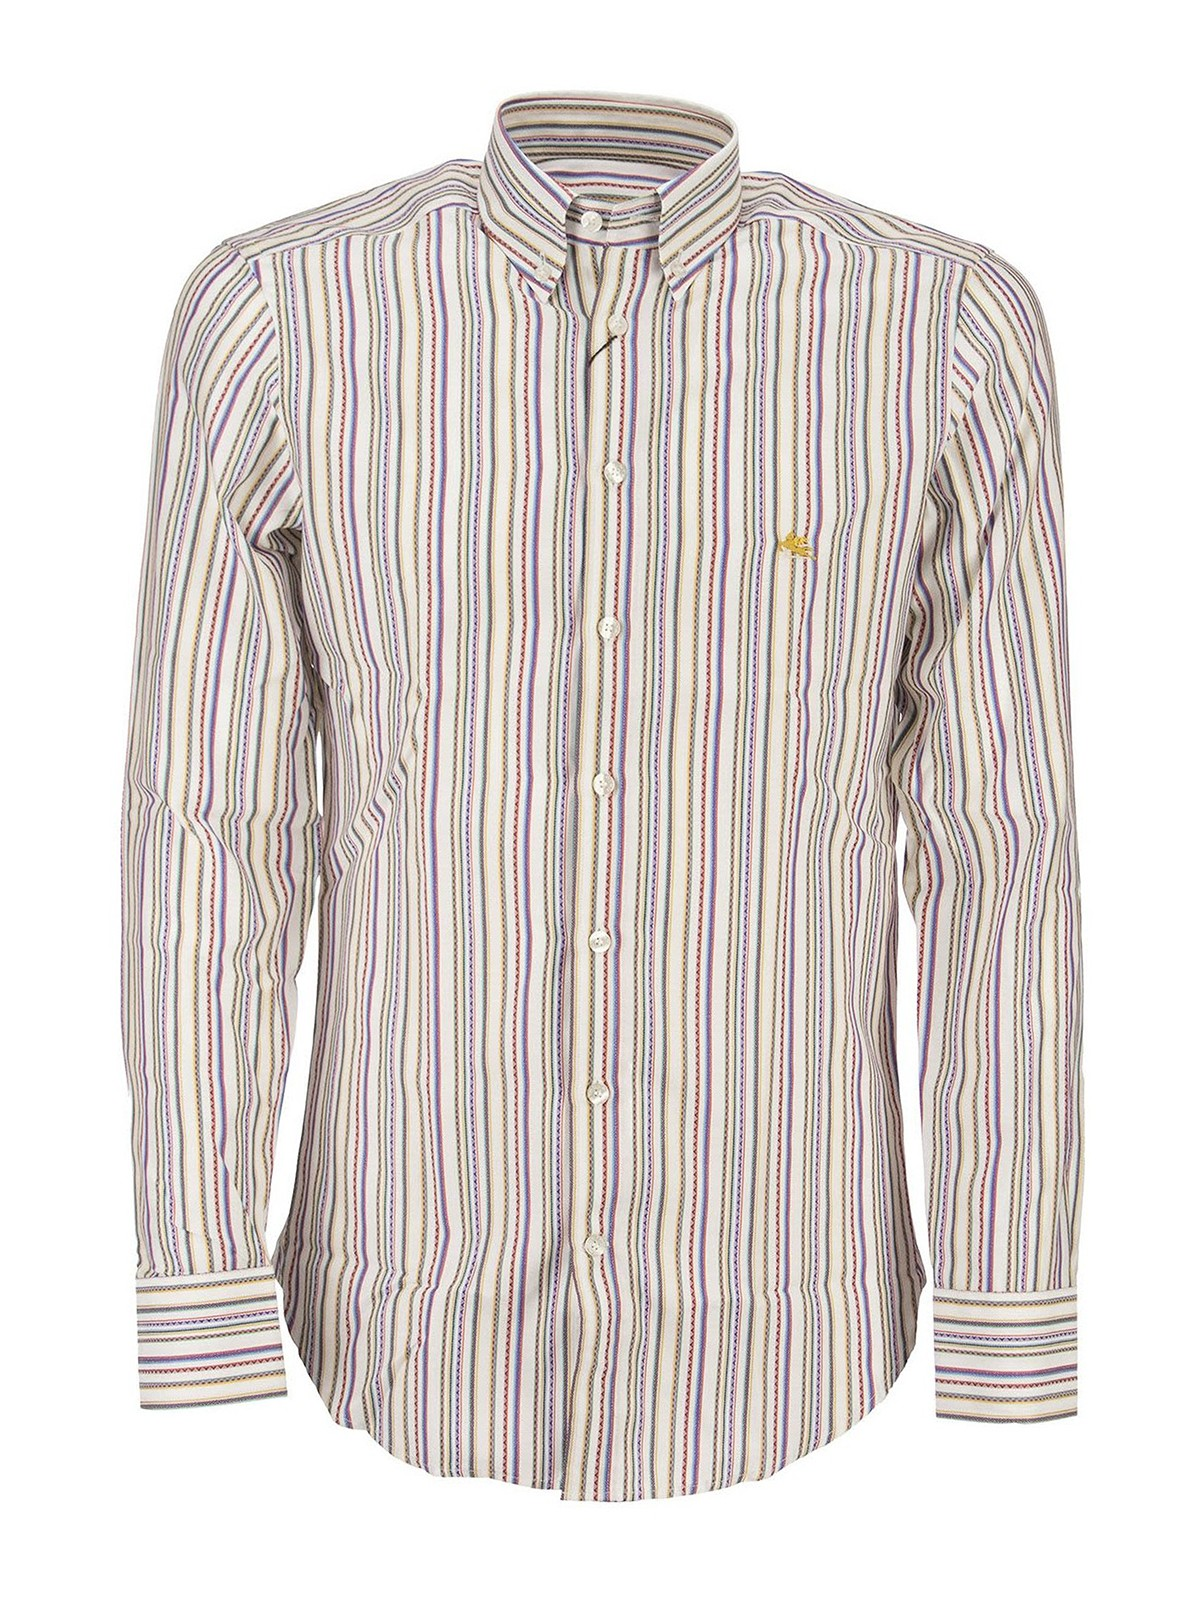 Etro EMBROIDERED STRIPES COTTON SHIRT